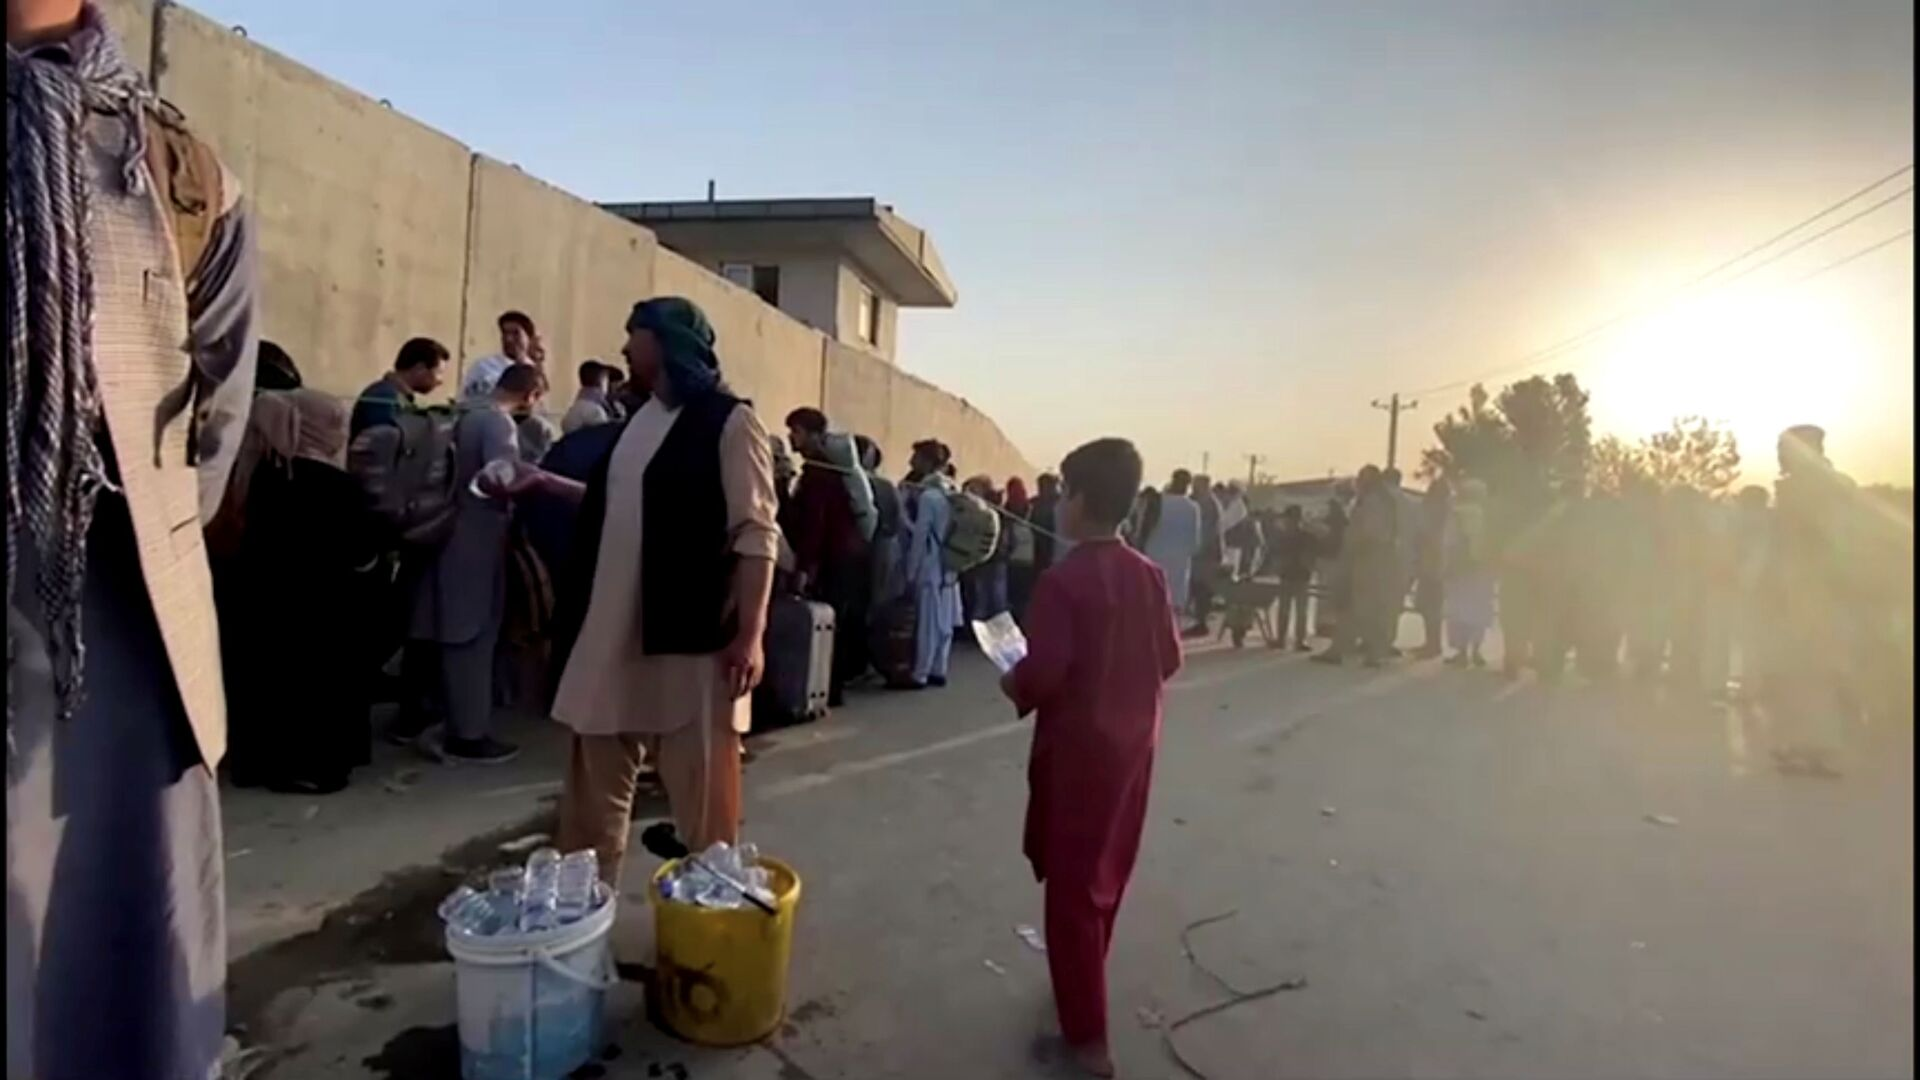 A man instructs people to queue as they stand with their belongings outside Kabul airport, Afghanistan, August 22, 2021 in this still image taken from video - Sputnik International, 1920, 07.09.2021